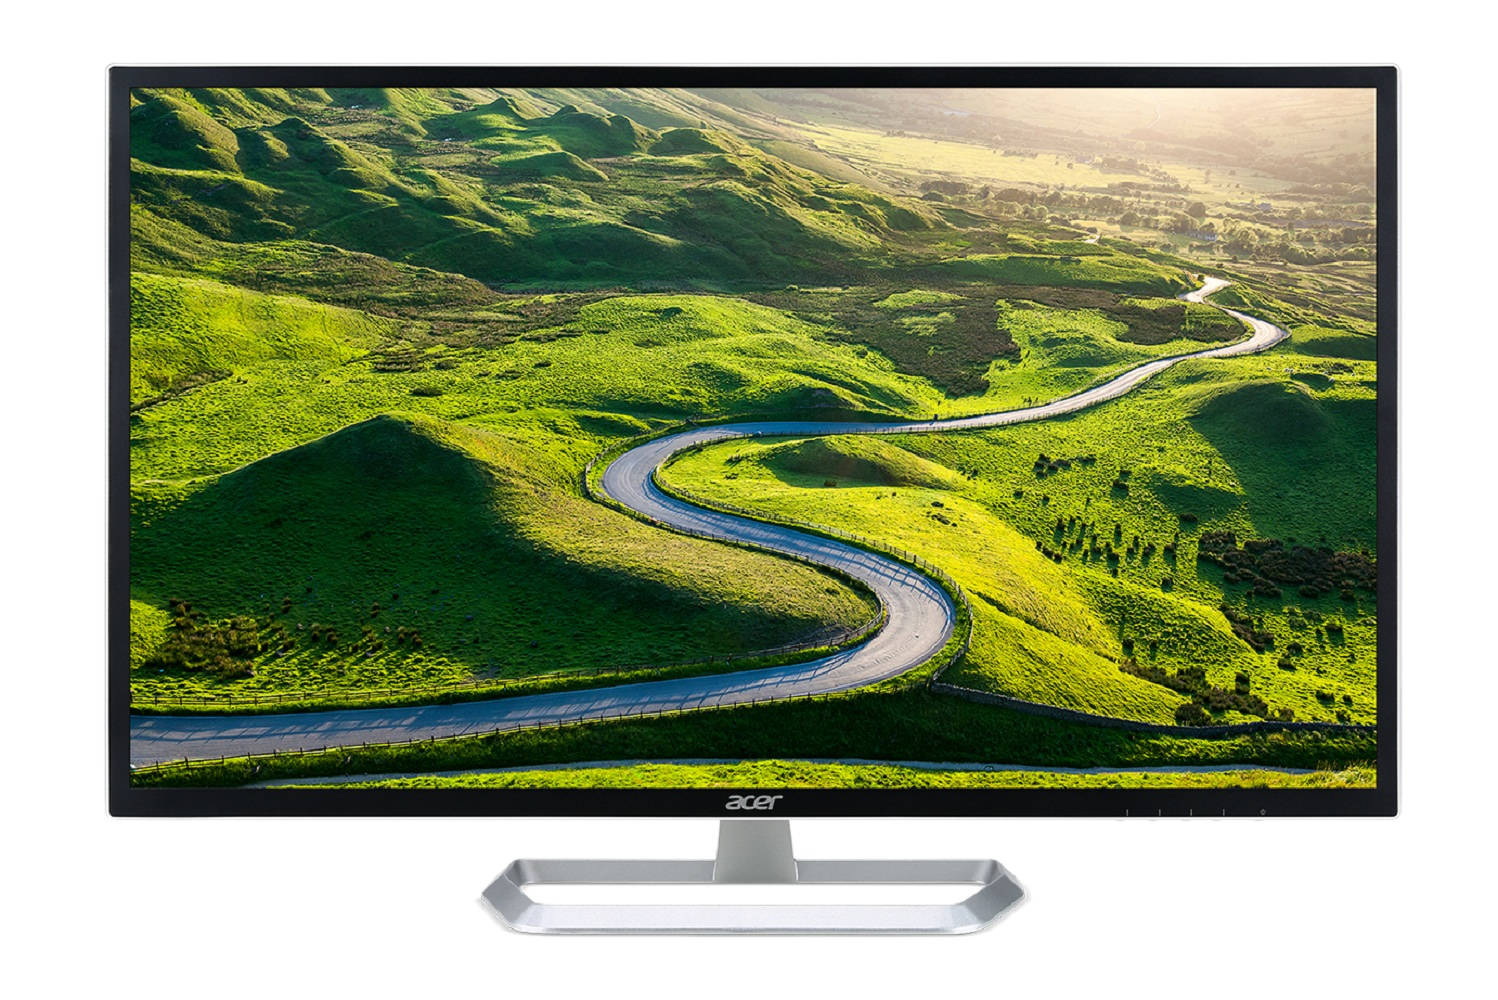 """Acer EB321HQ 31.5"""" LED LCD Monitor 16:9 by Acer"""